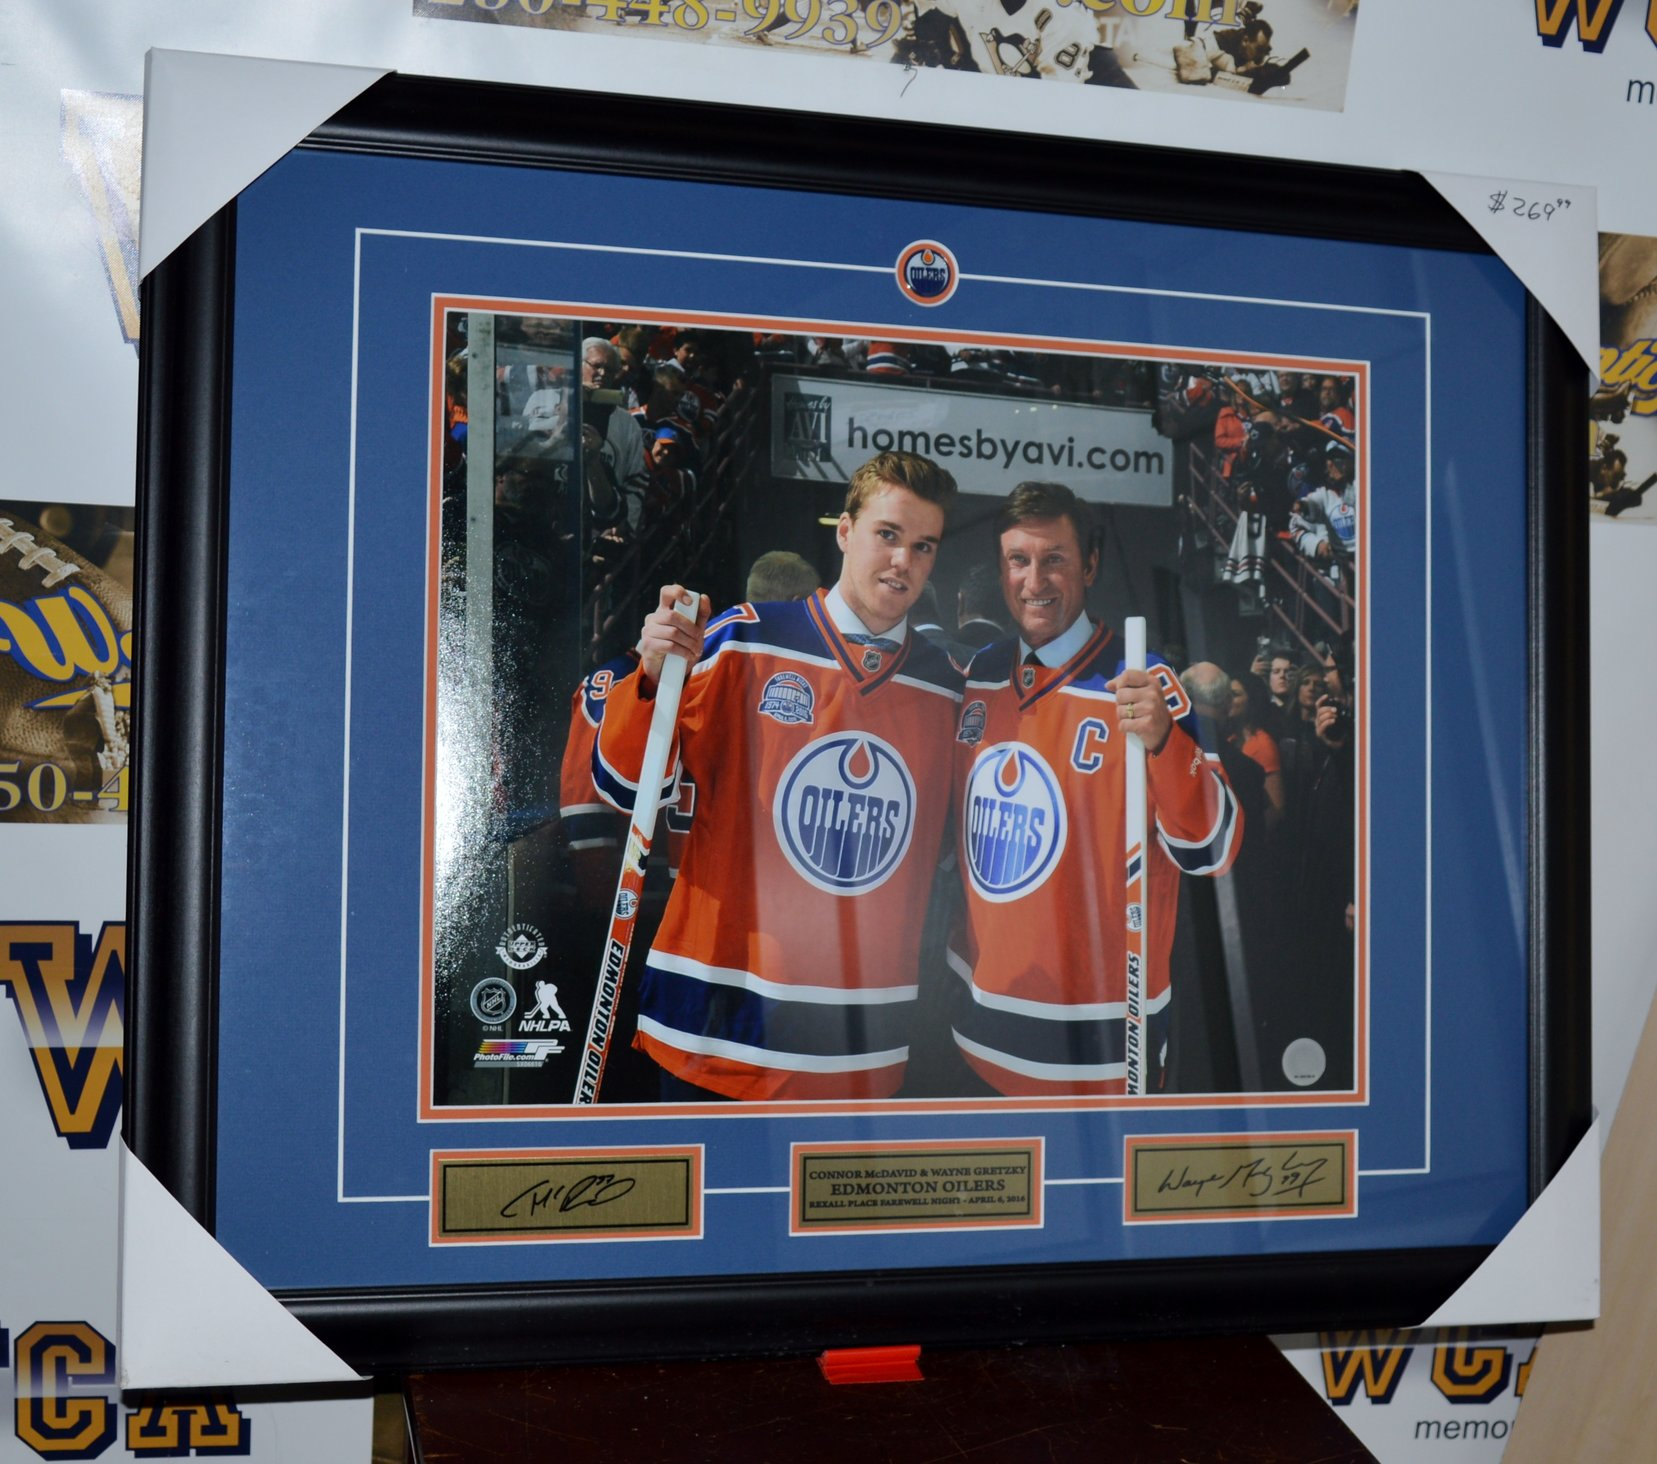 ... Wayne Gretzky Unsigned Edmonton Oilers Framed 16 x 20 Photo.  West Coast Authentic NHL Oilers Connor McDavid Wayne Gretzky Autographed Framed Photo bdfdde009